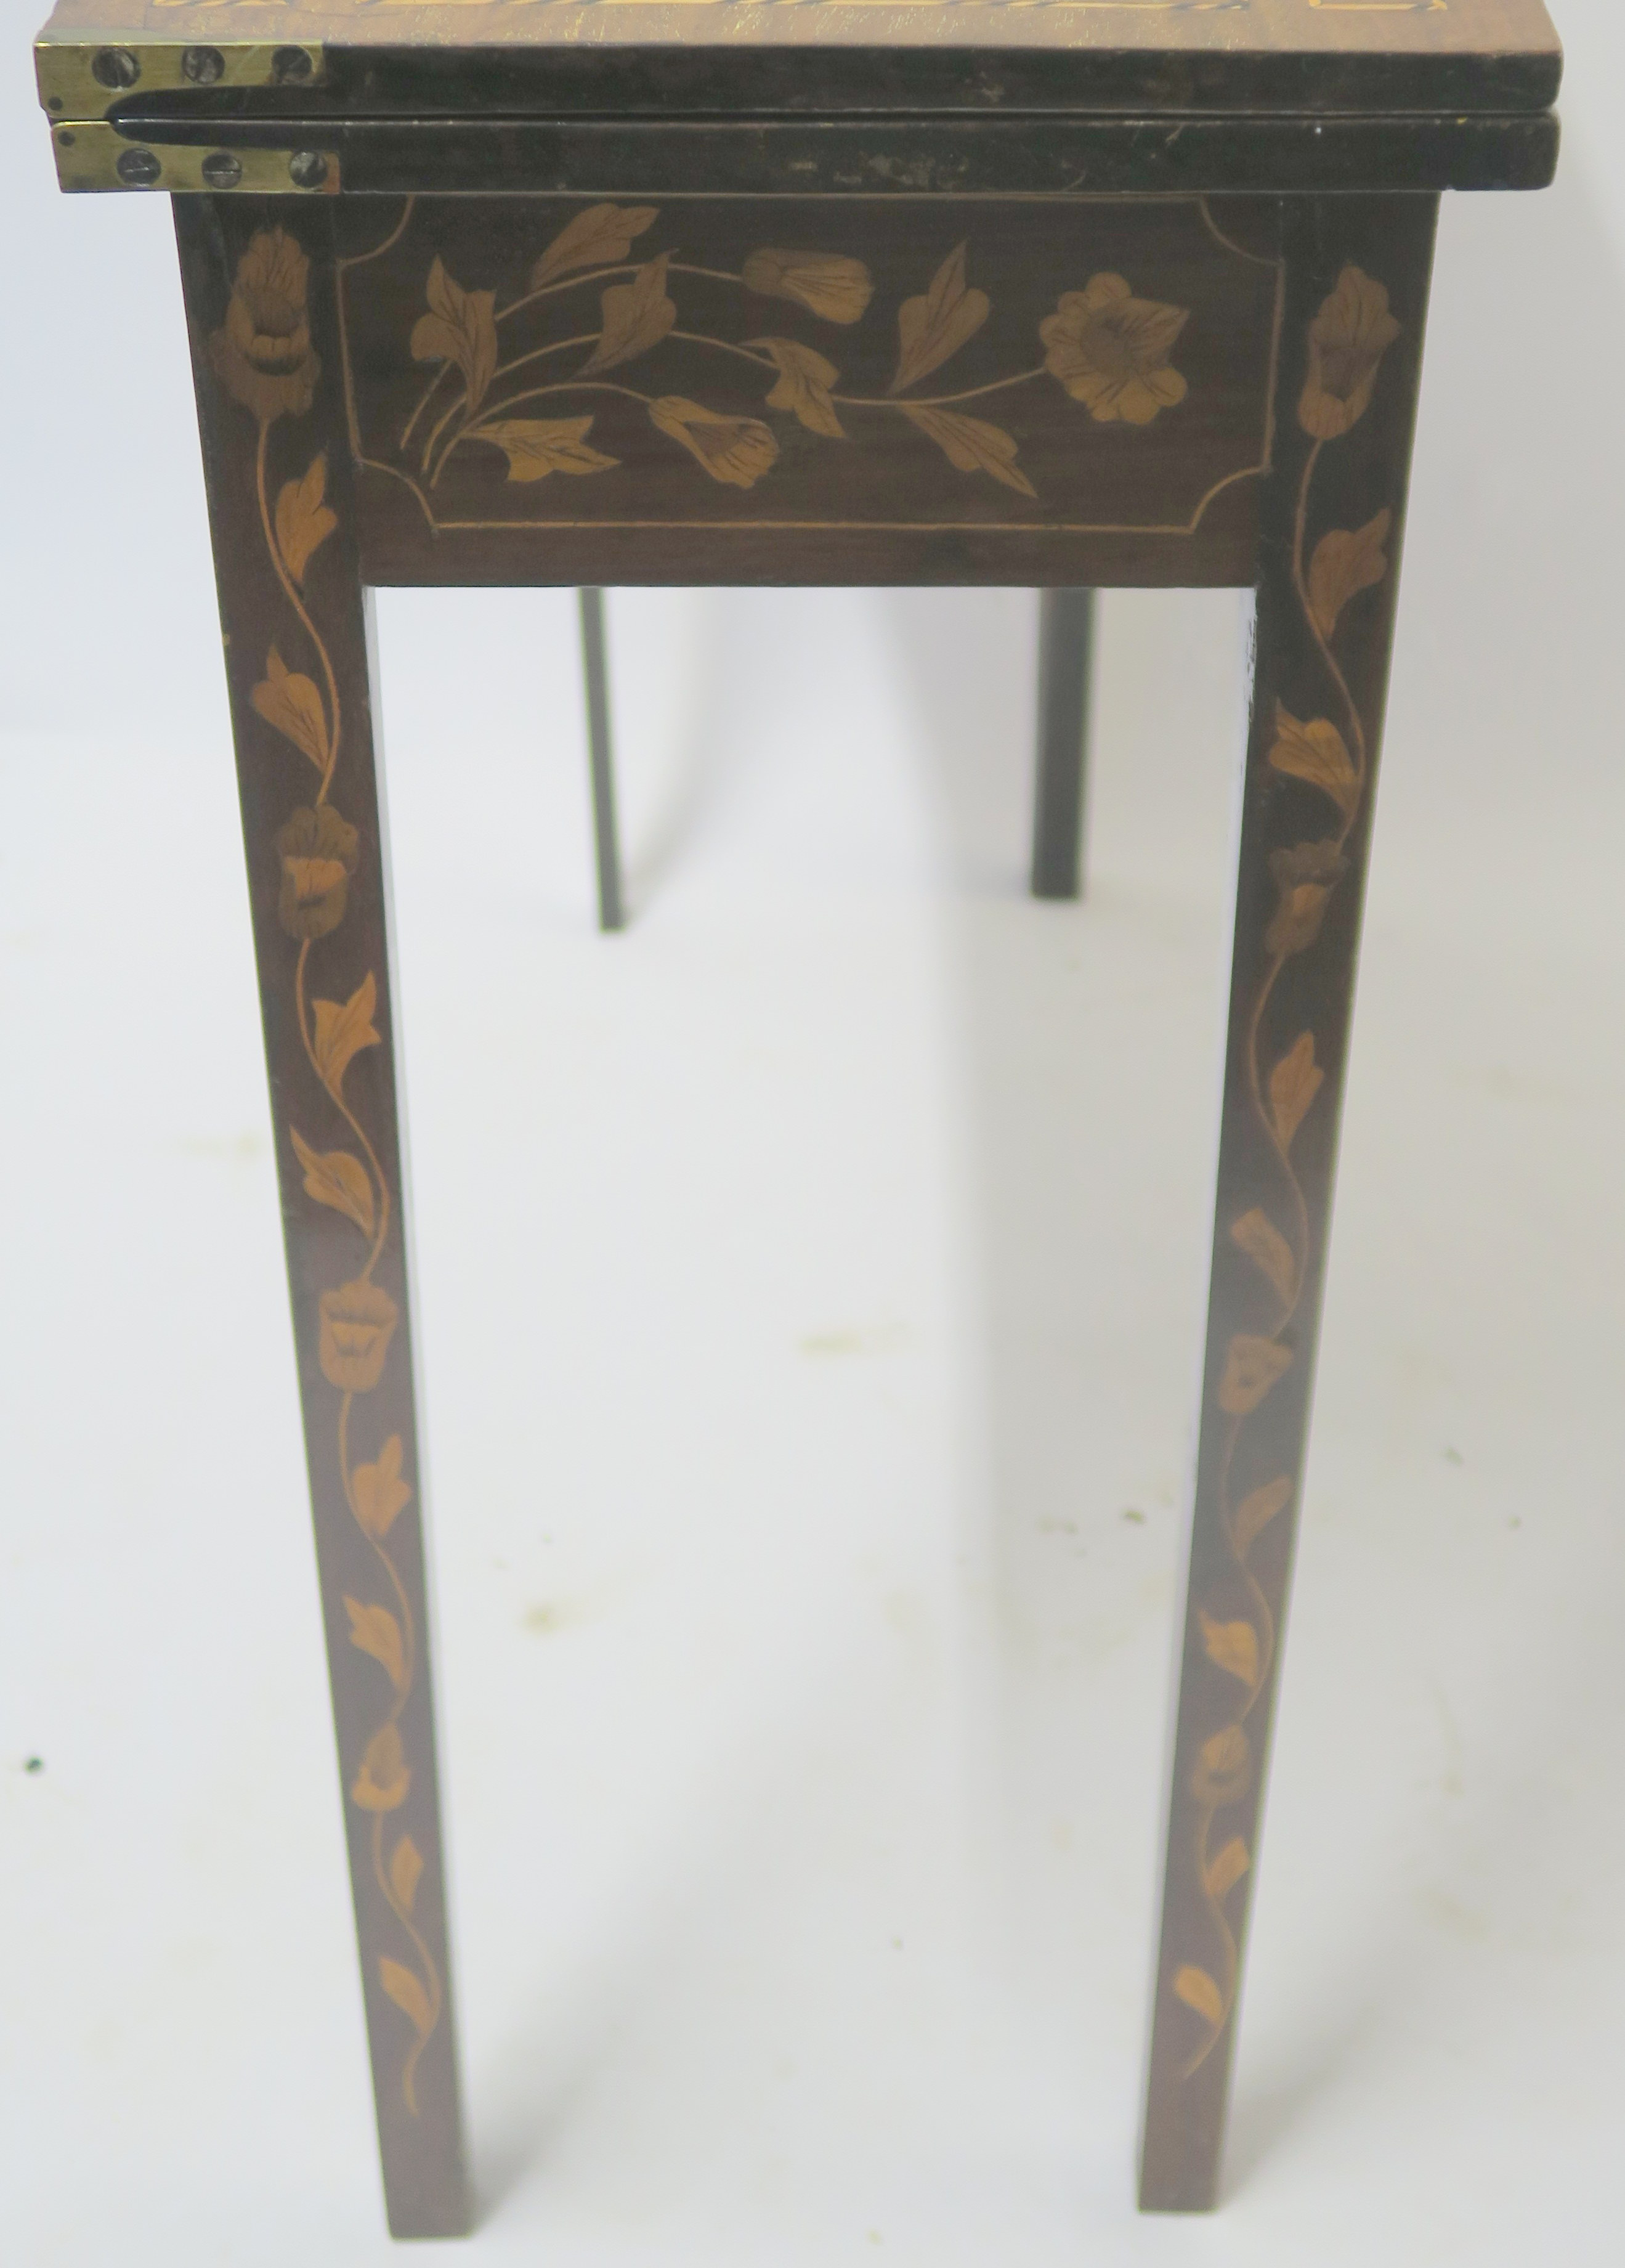 A DUTCH MARQUETRY WALNUT GAMES TABLE decorated with a basket of flowers, birds and scrolling - Image 7 of 11